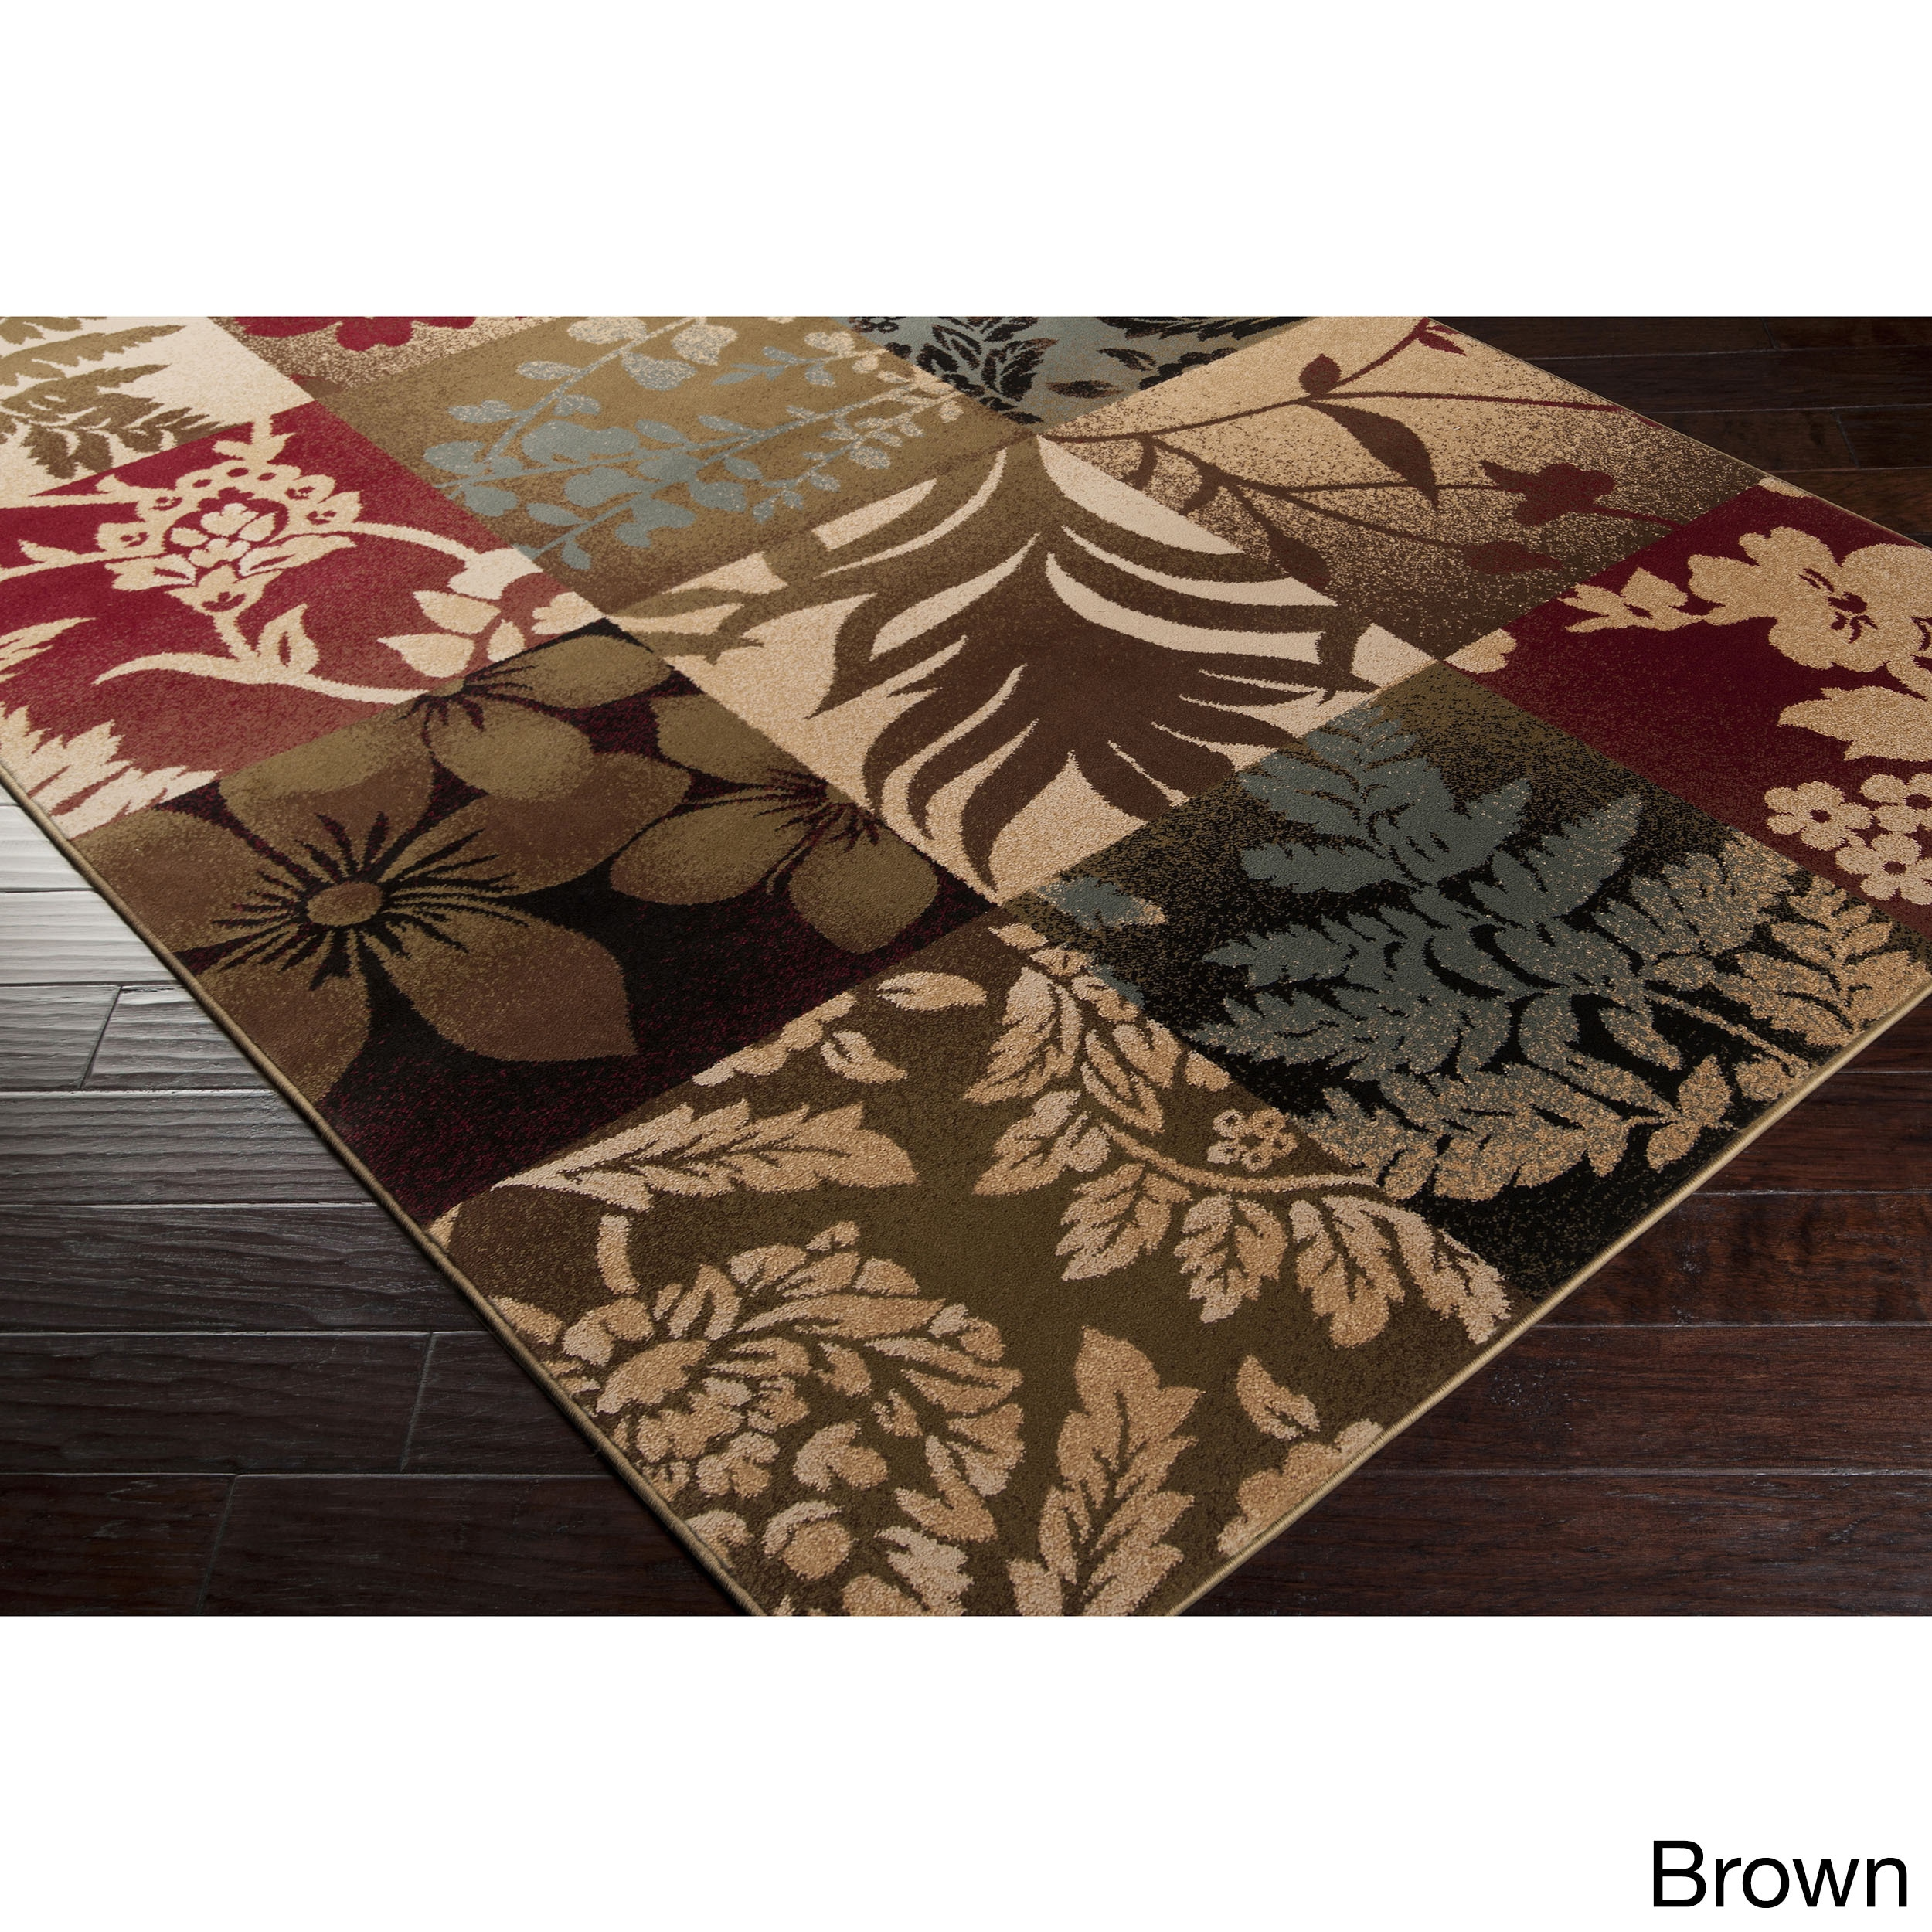 Roswell Patchwork Area Rug (2' x 3'3)